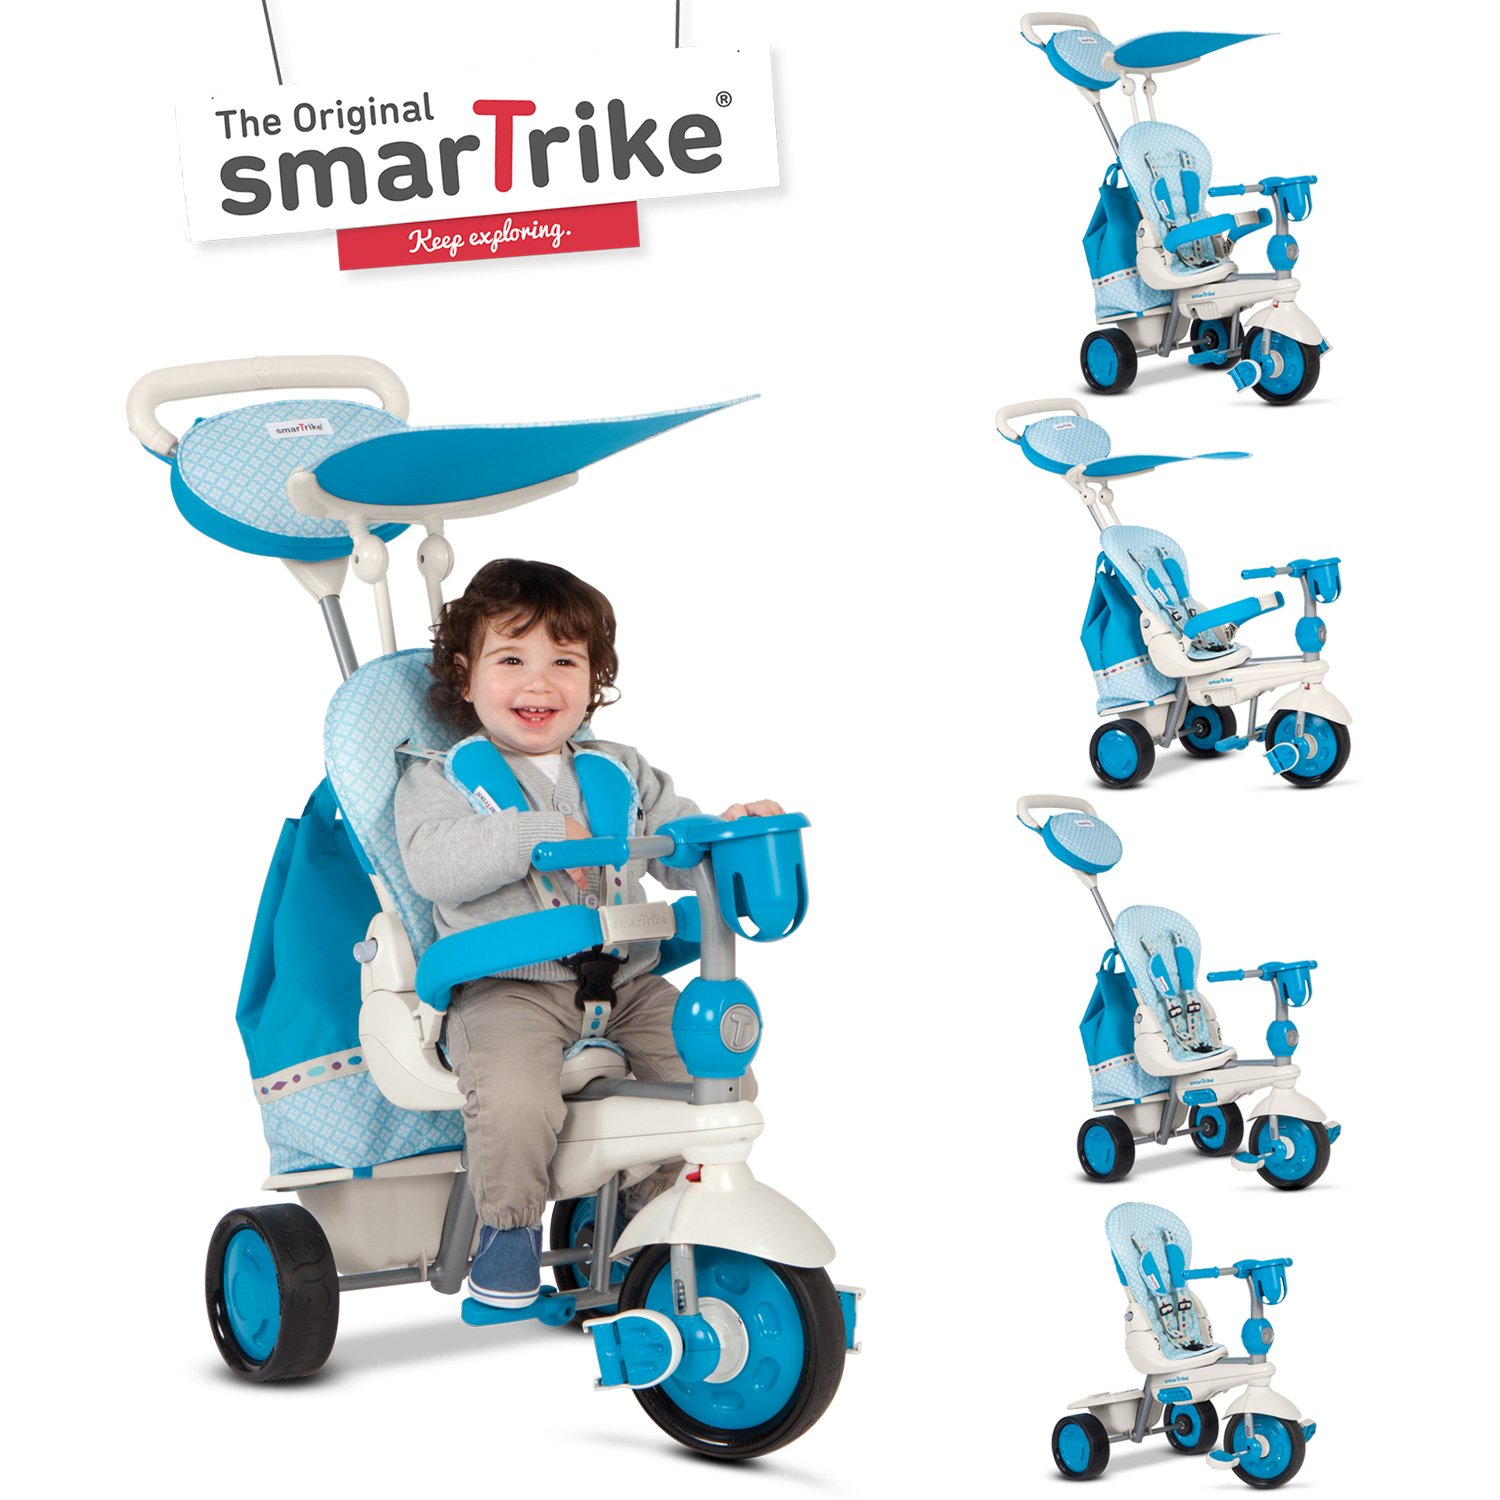 smarTrike Explorer 5 in 1 Baby Trike Light Weight 13.2 Pounds With Foot Rest Reclining Seat Quiet Ride Wheels Cup Holder Storage Bag and Padded Seat - Blue